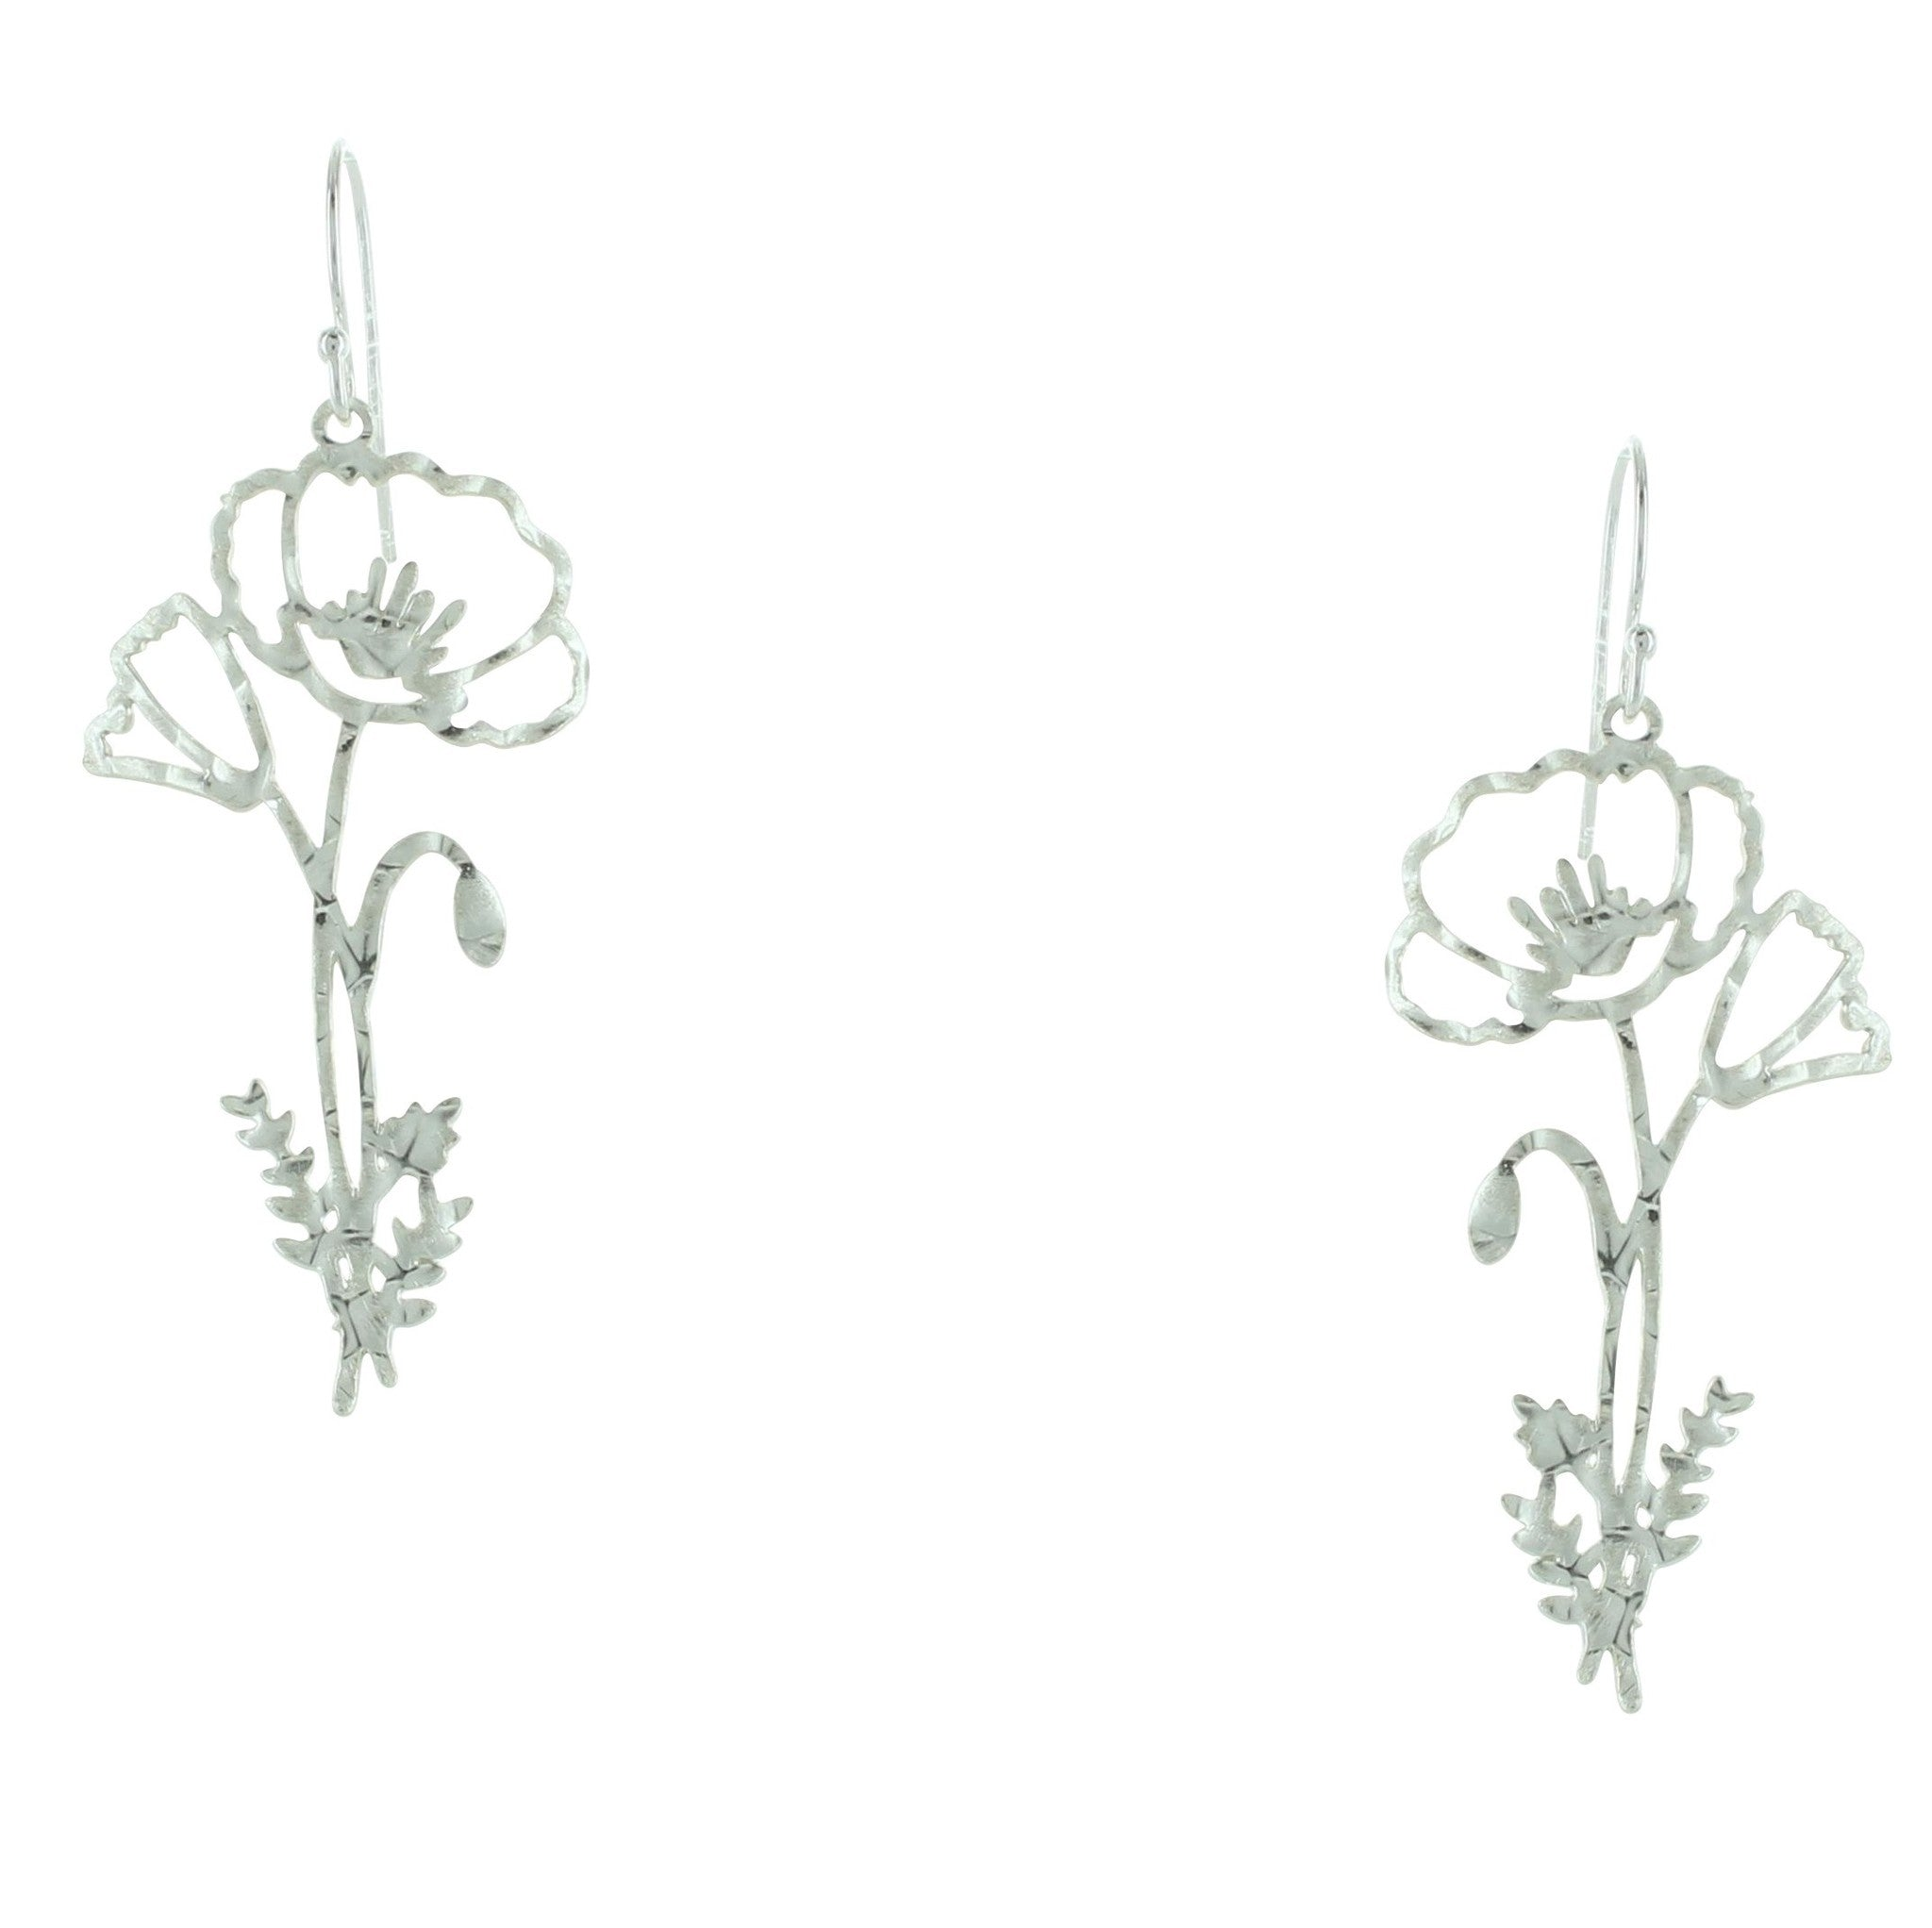 Hammered Flower Earrings